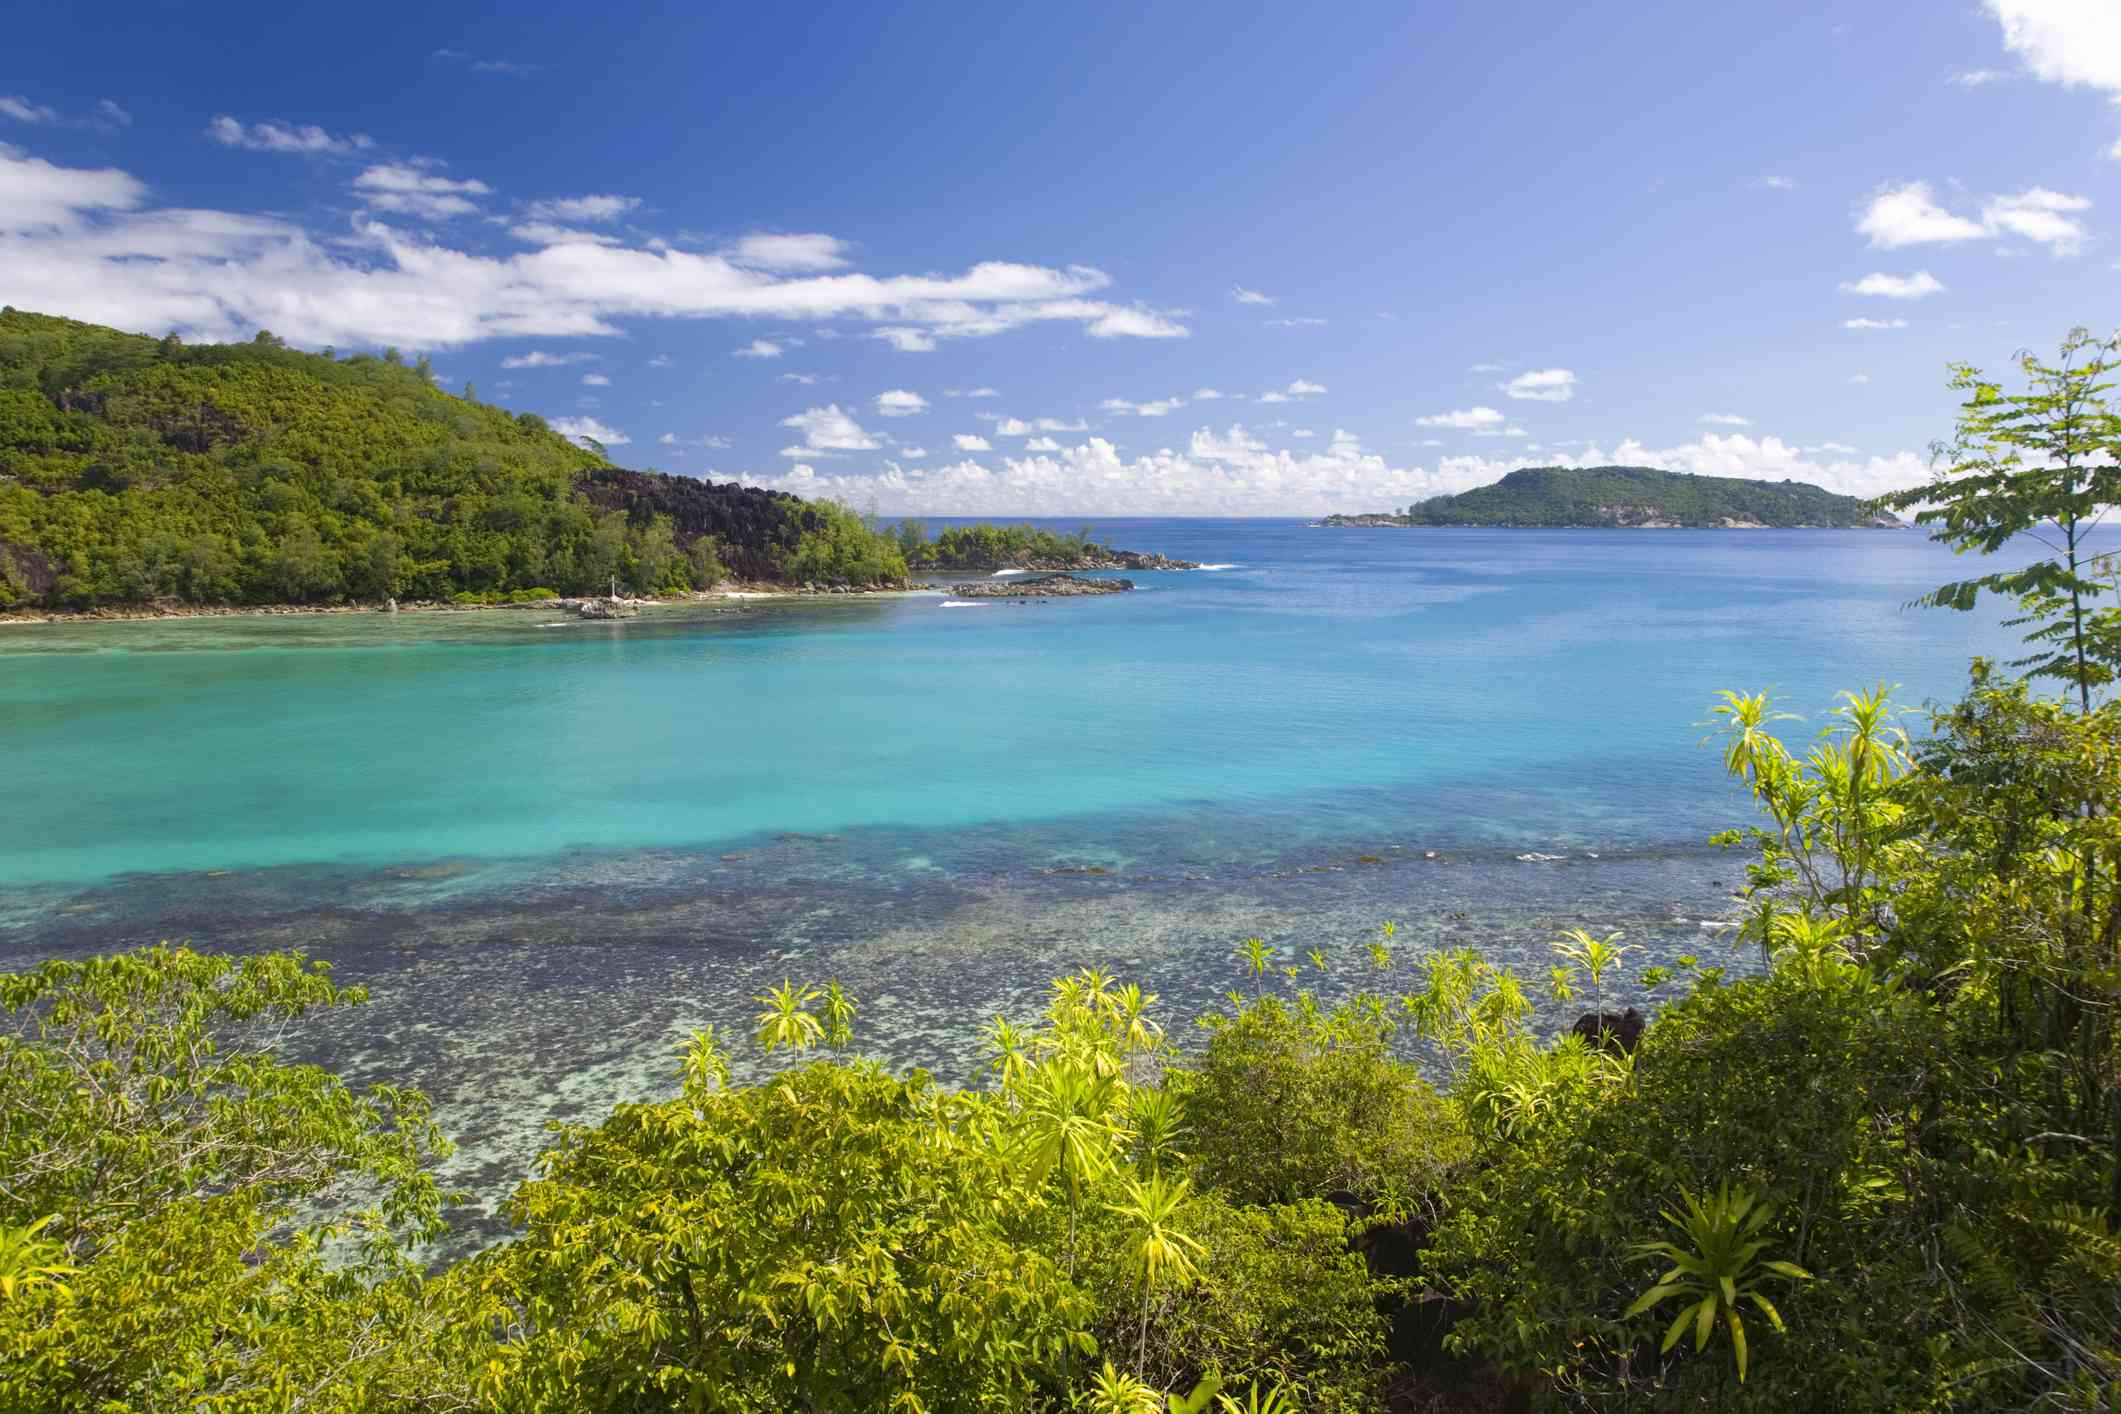 Turquoise waters of Port Launay Marine National Park, Port Glaud district.